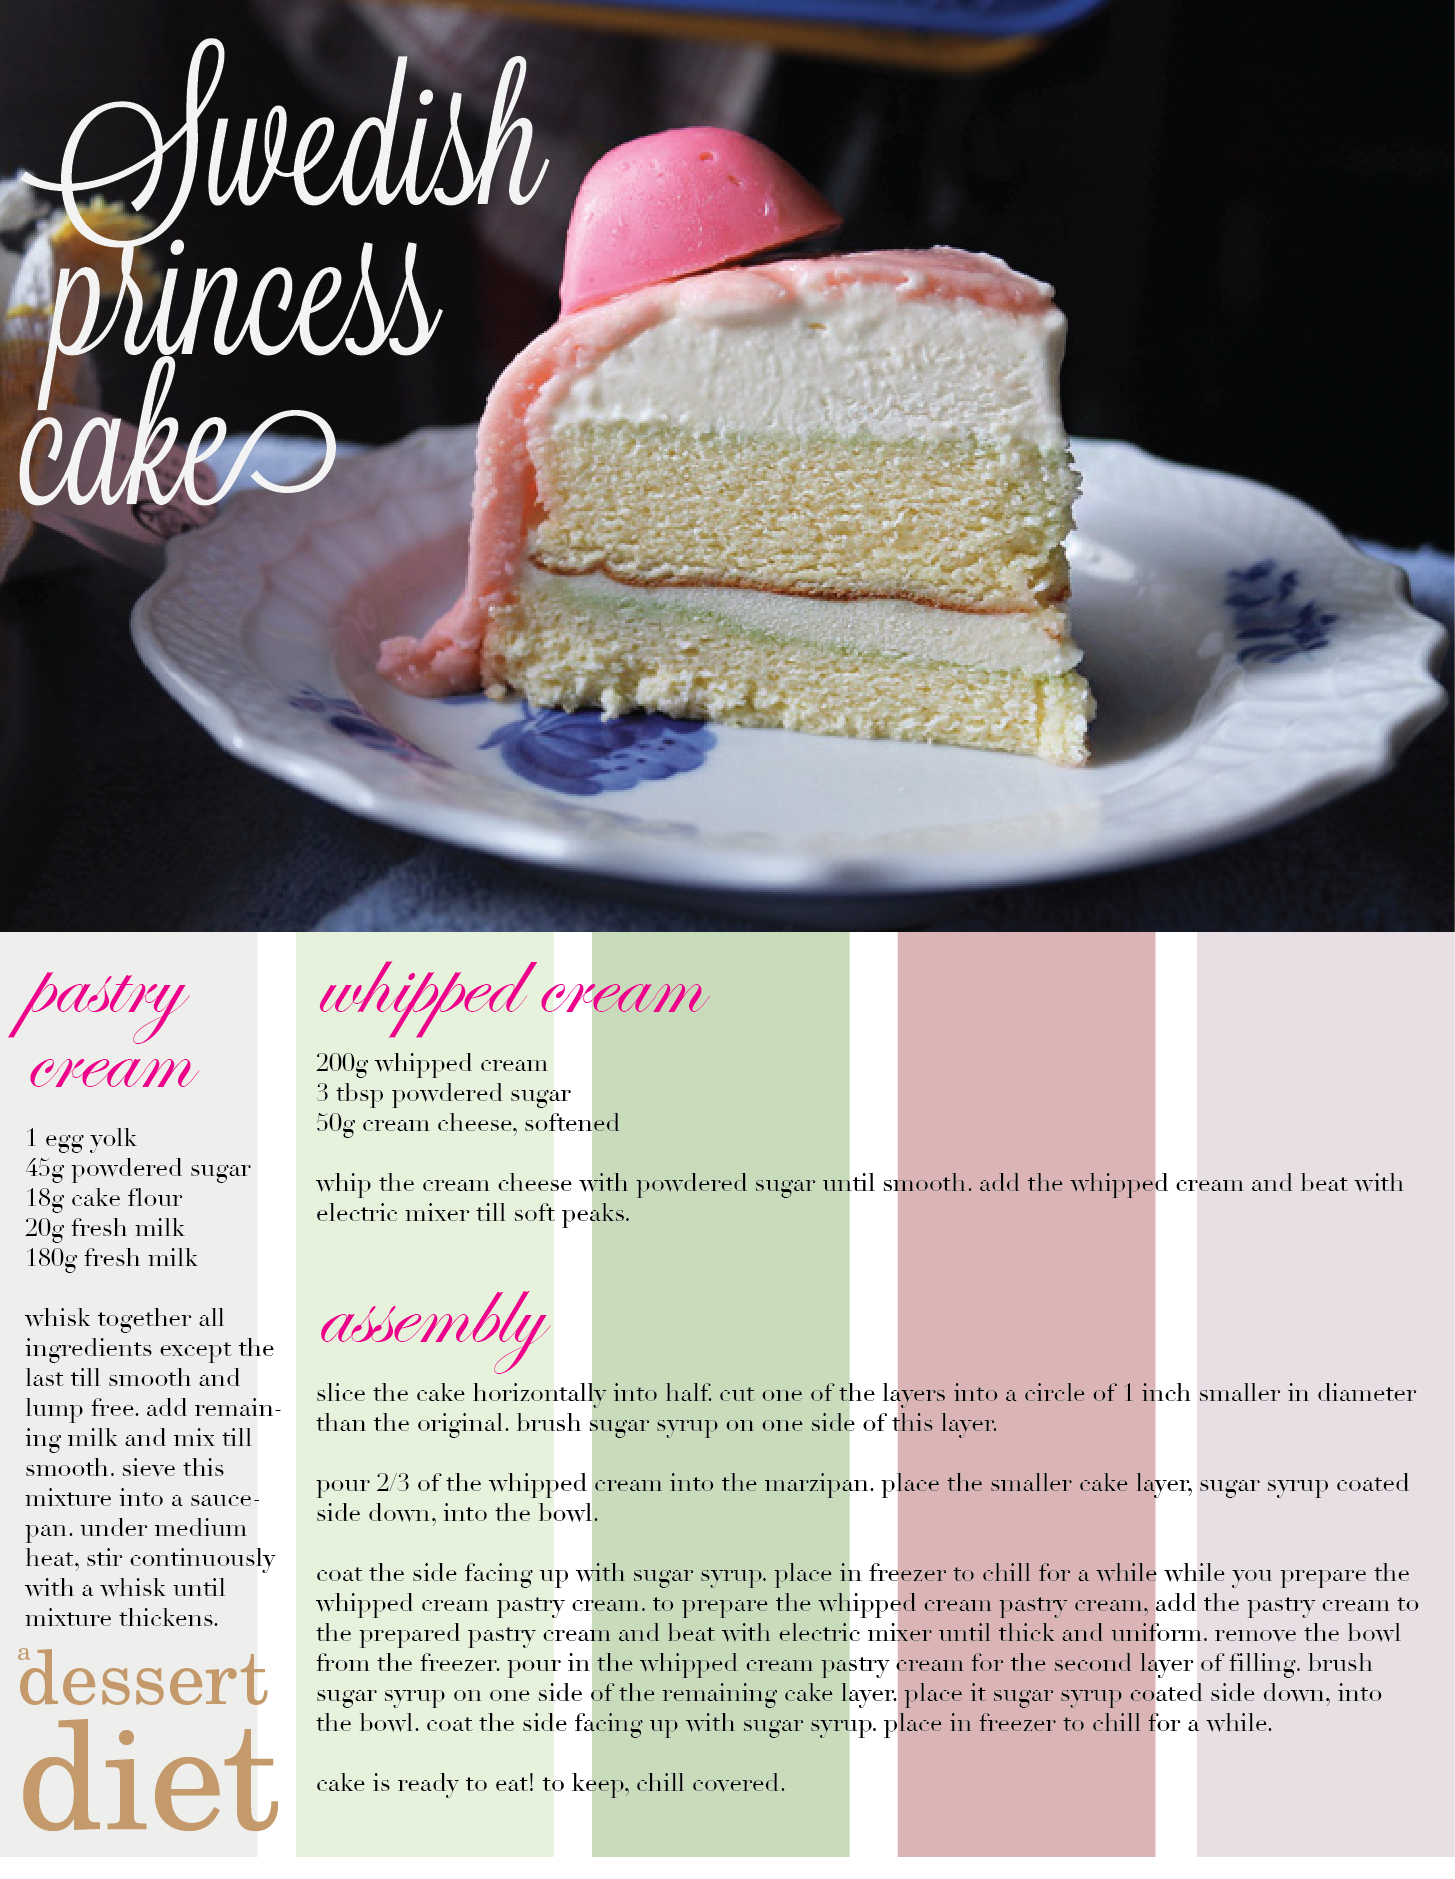 Swedish Princess Cake The Marzipan Cover Is Usually Light Green